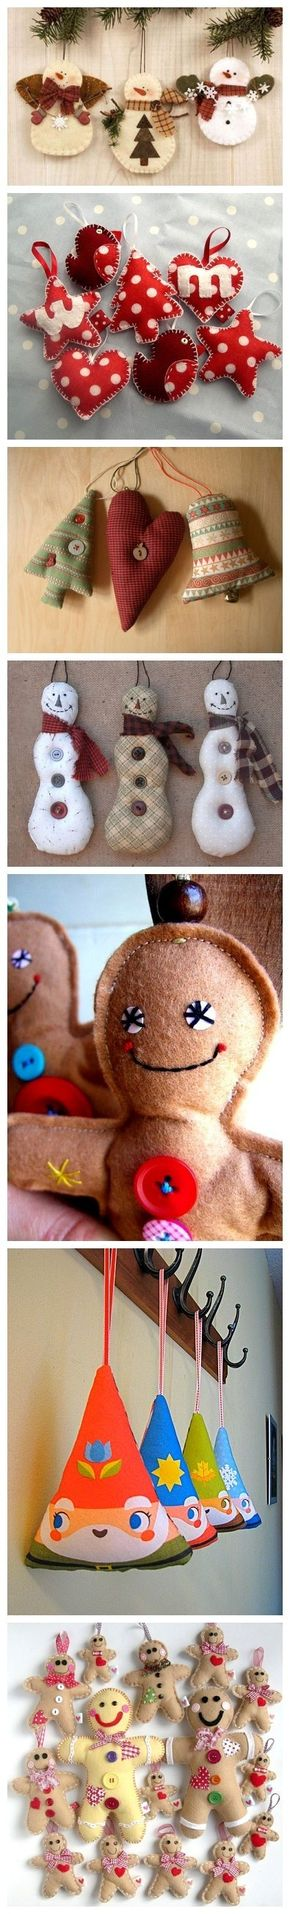 49++ Christmas felt crafts pinterest ideas